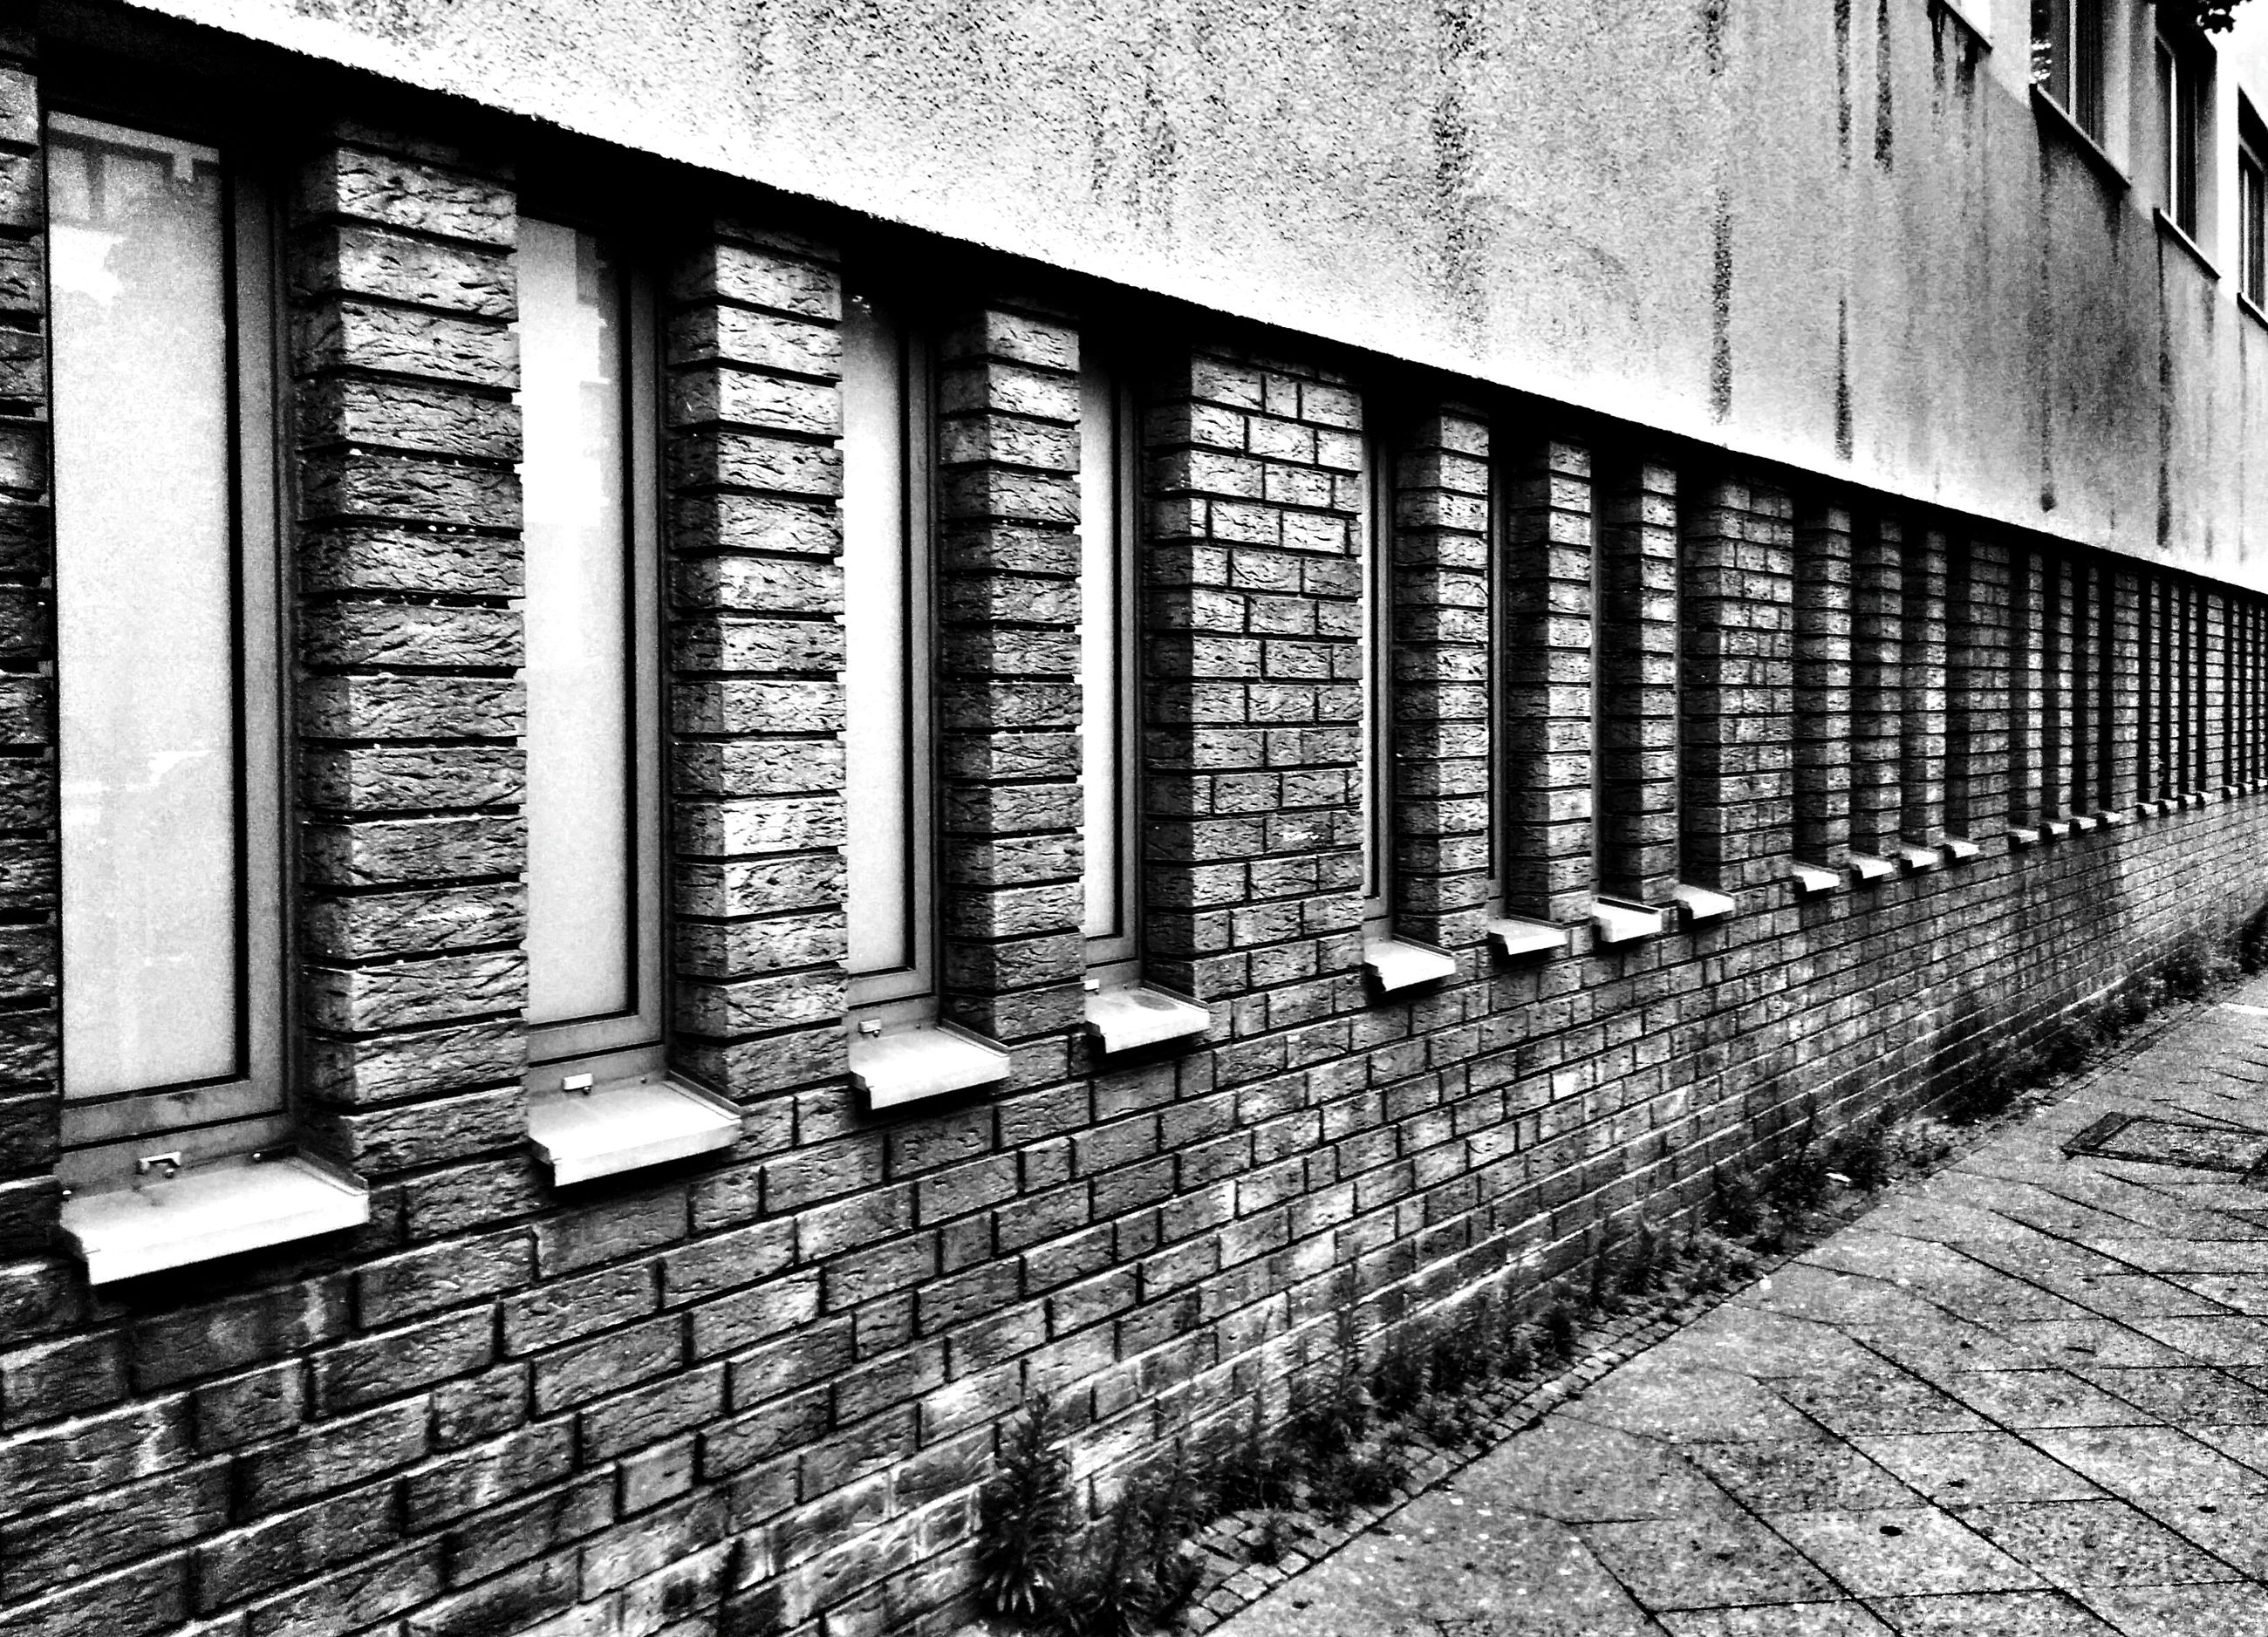 architecture, built structure, window, building exterior, wall - building feature, indoors, old, house, closed, wall, door, abandoned, in a row, brick wall, no people, pattern, day, metal, building, repetition